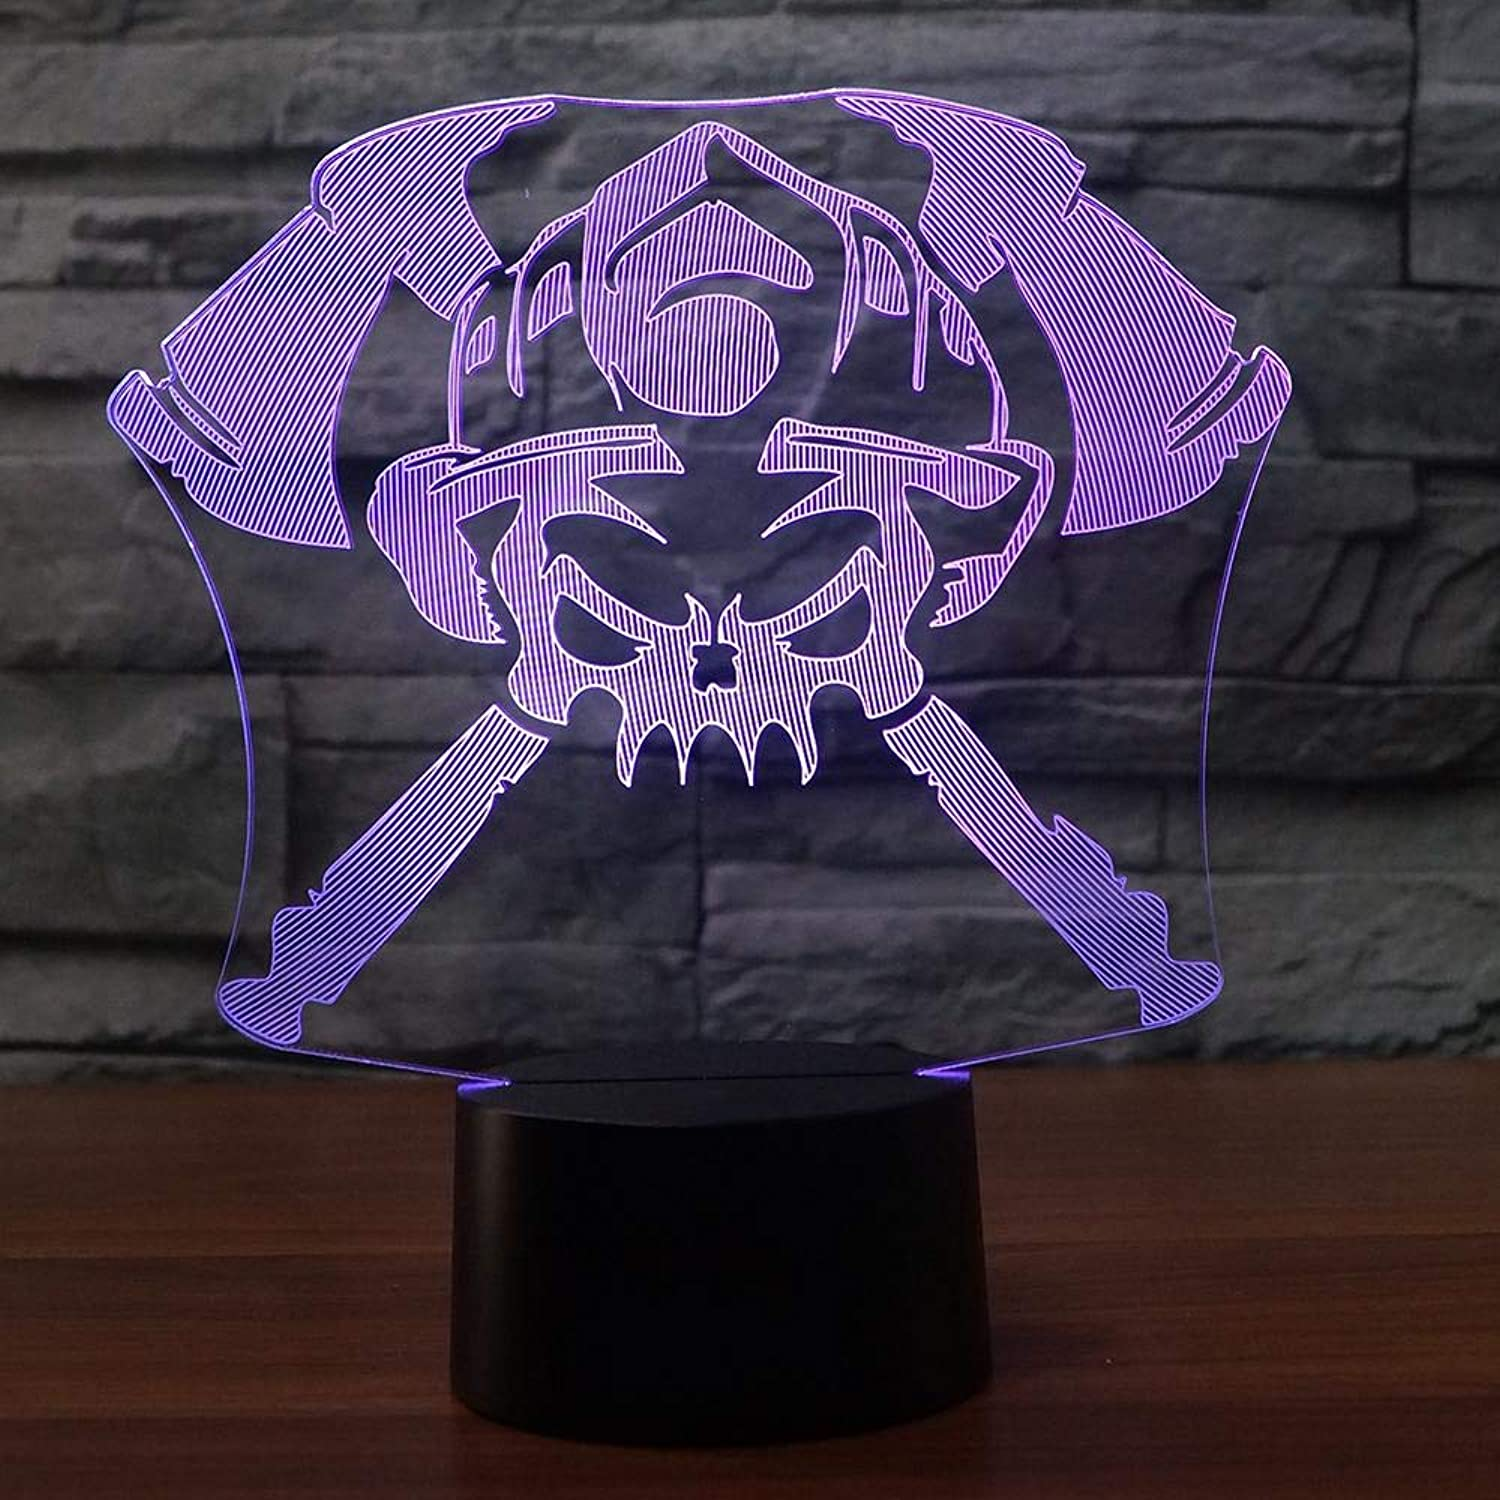 Fsewfs 3D Night Light 7 color Changing 3D Skull Firefighters Led Nightlight Kids Touch USB Gradients Table Lamp Baby Bedroom Fire Tools Lighting Decor